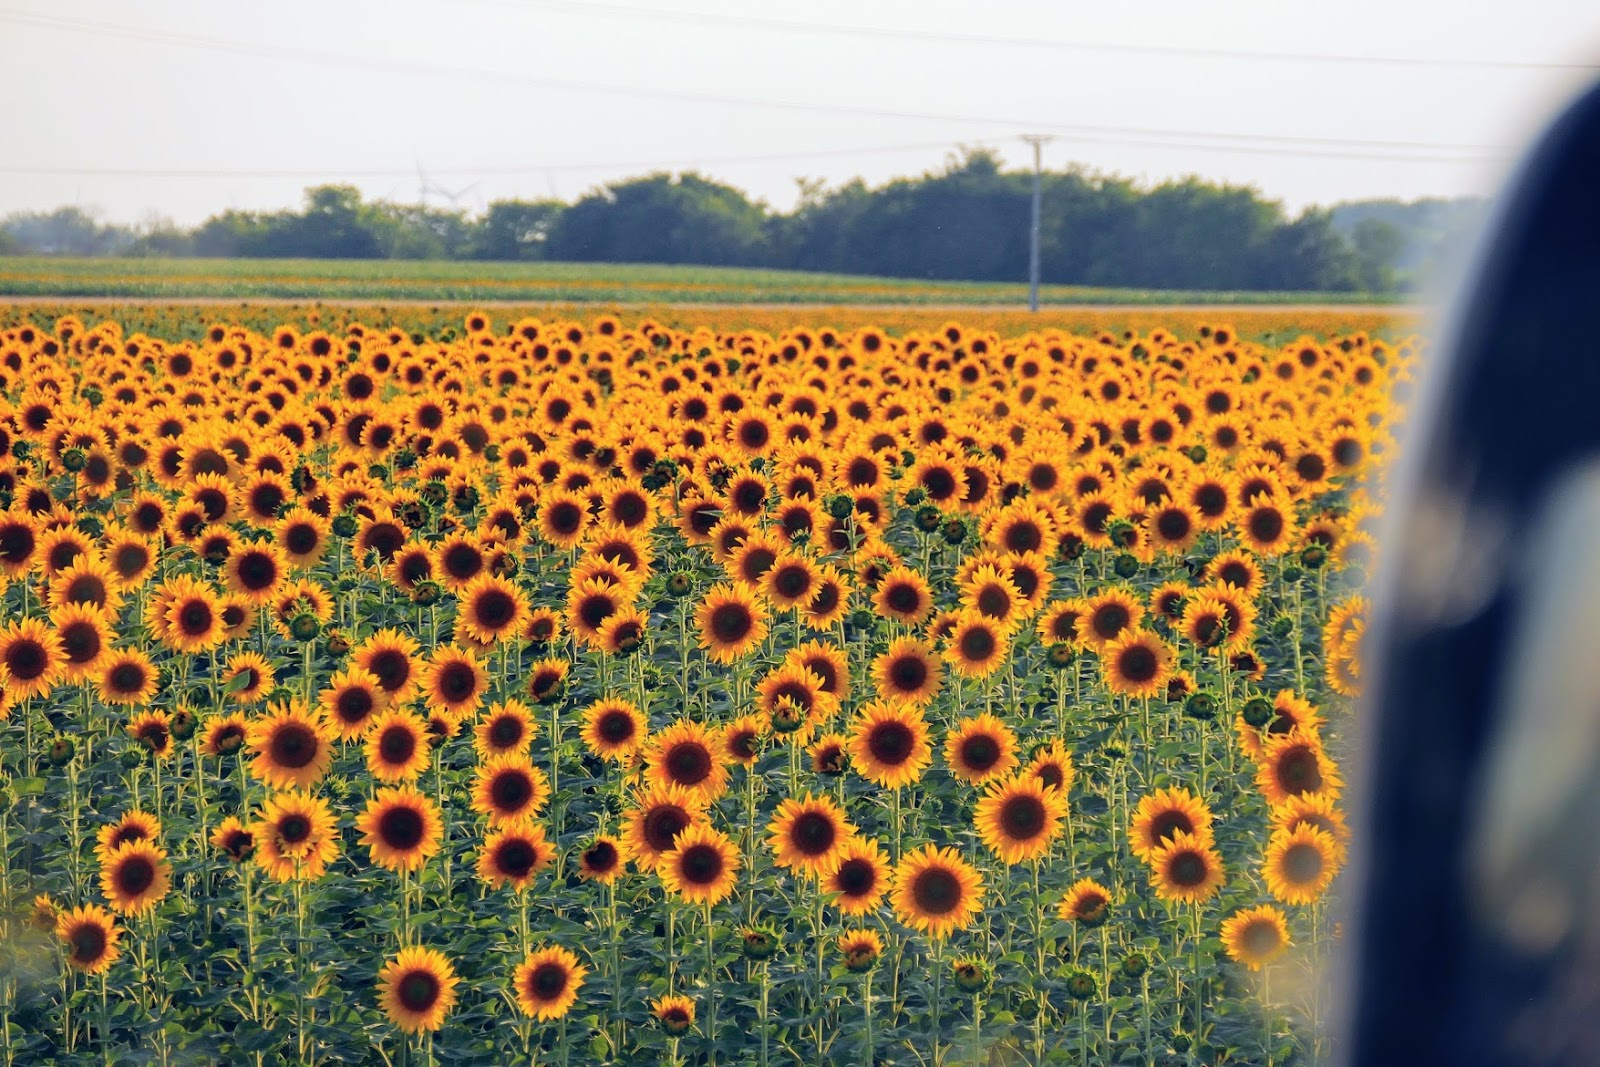 sunflower jews and simon wiesenthal For instance, in his book the sunflower: on the possibilities and limits of  with  the help of a nurse, he sought out a jew to whom he could  if apply this to  simon wiesenthal's dilemma, it's clear that simon had neither the.